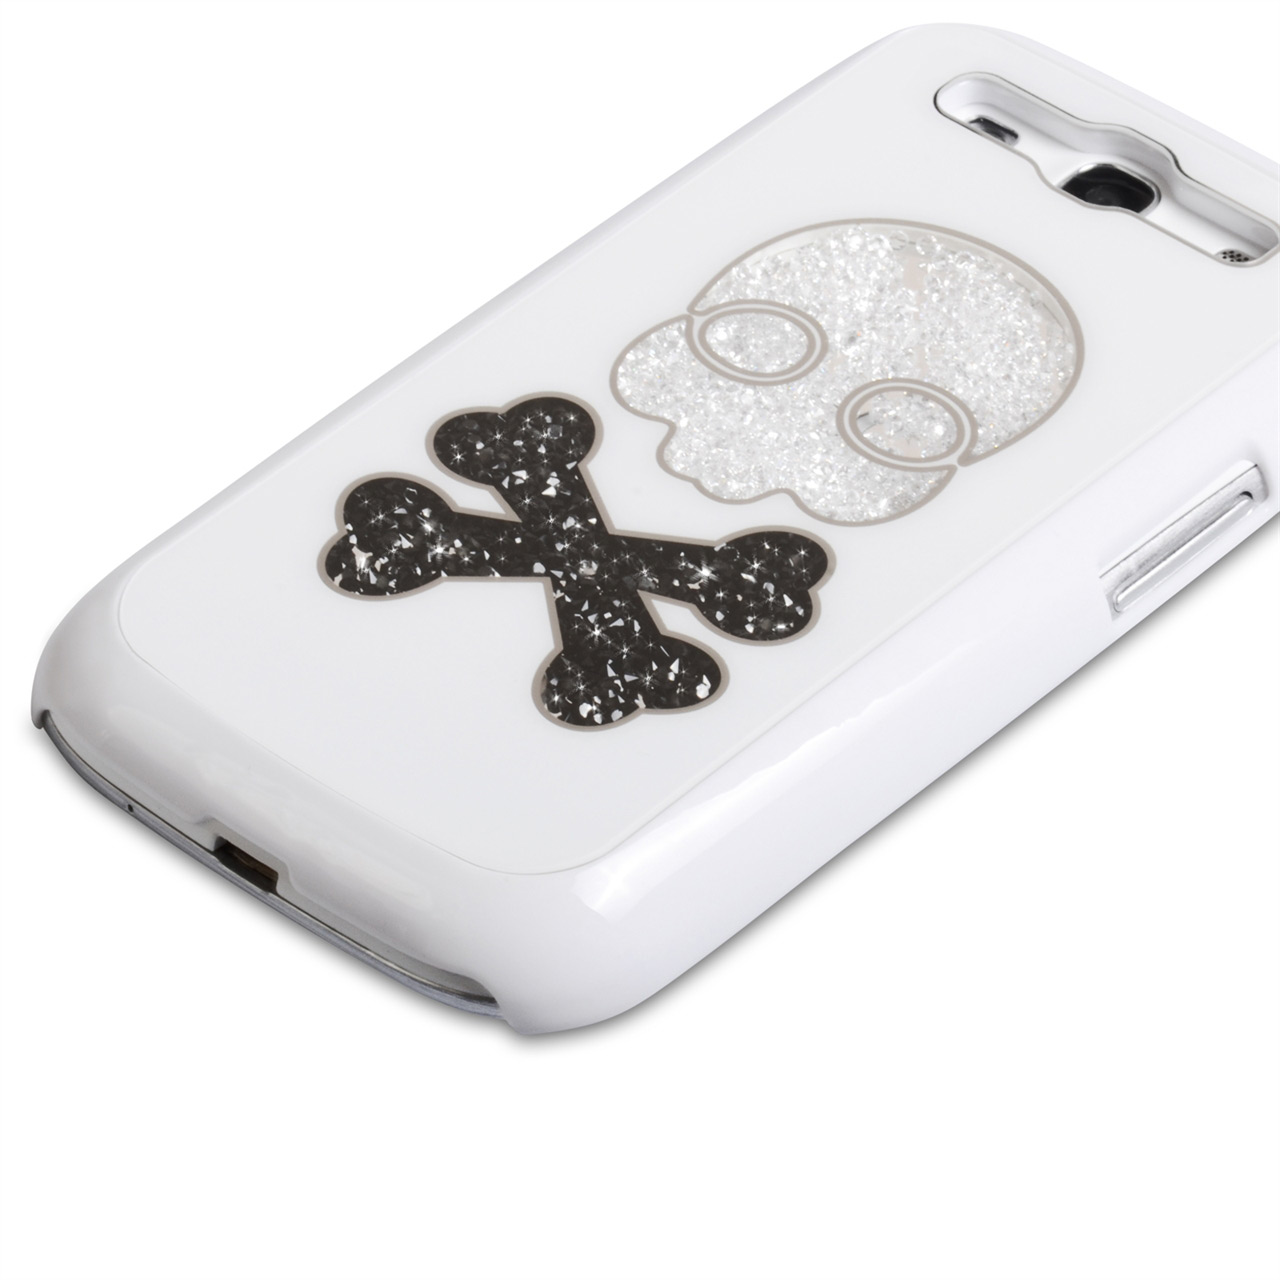 YouSave Accessories Samsung Galaxy S3 Skull Hard Case - White